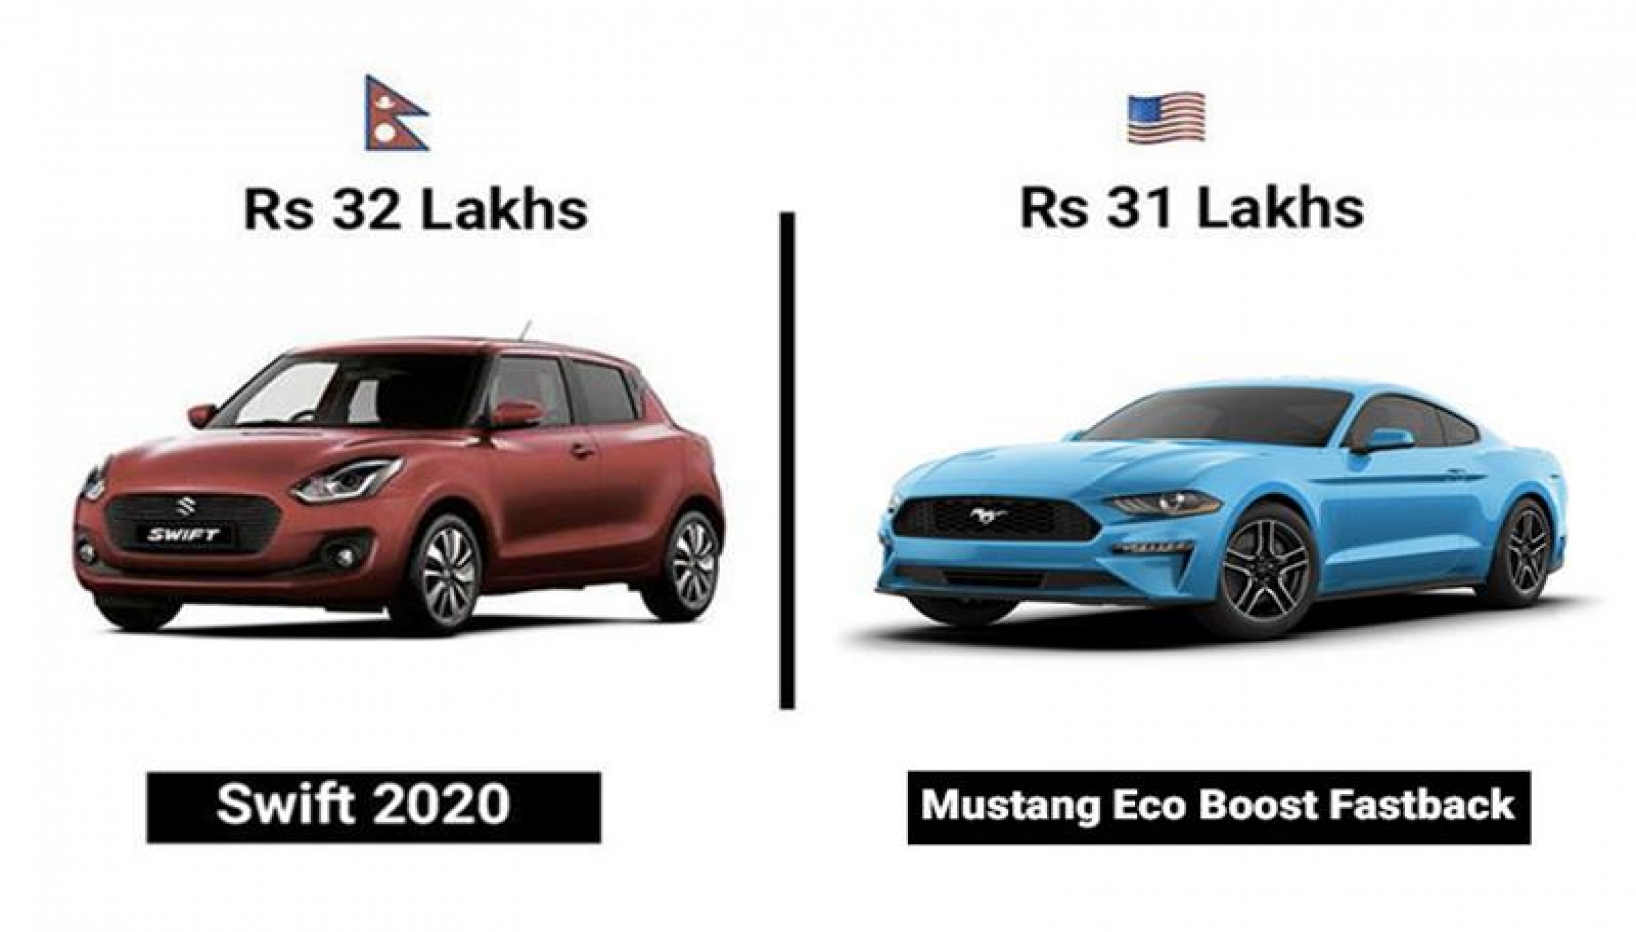 What Cars Can You Buy In Nepal And USA For The Same Price? Here's What We Found